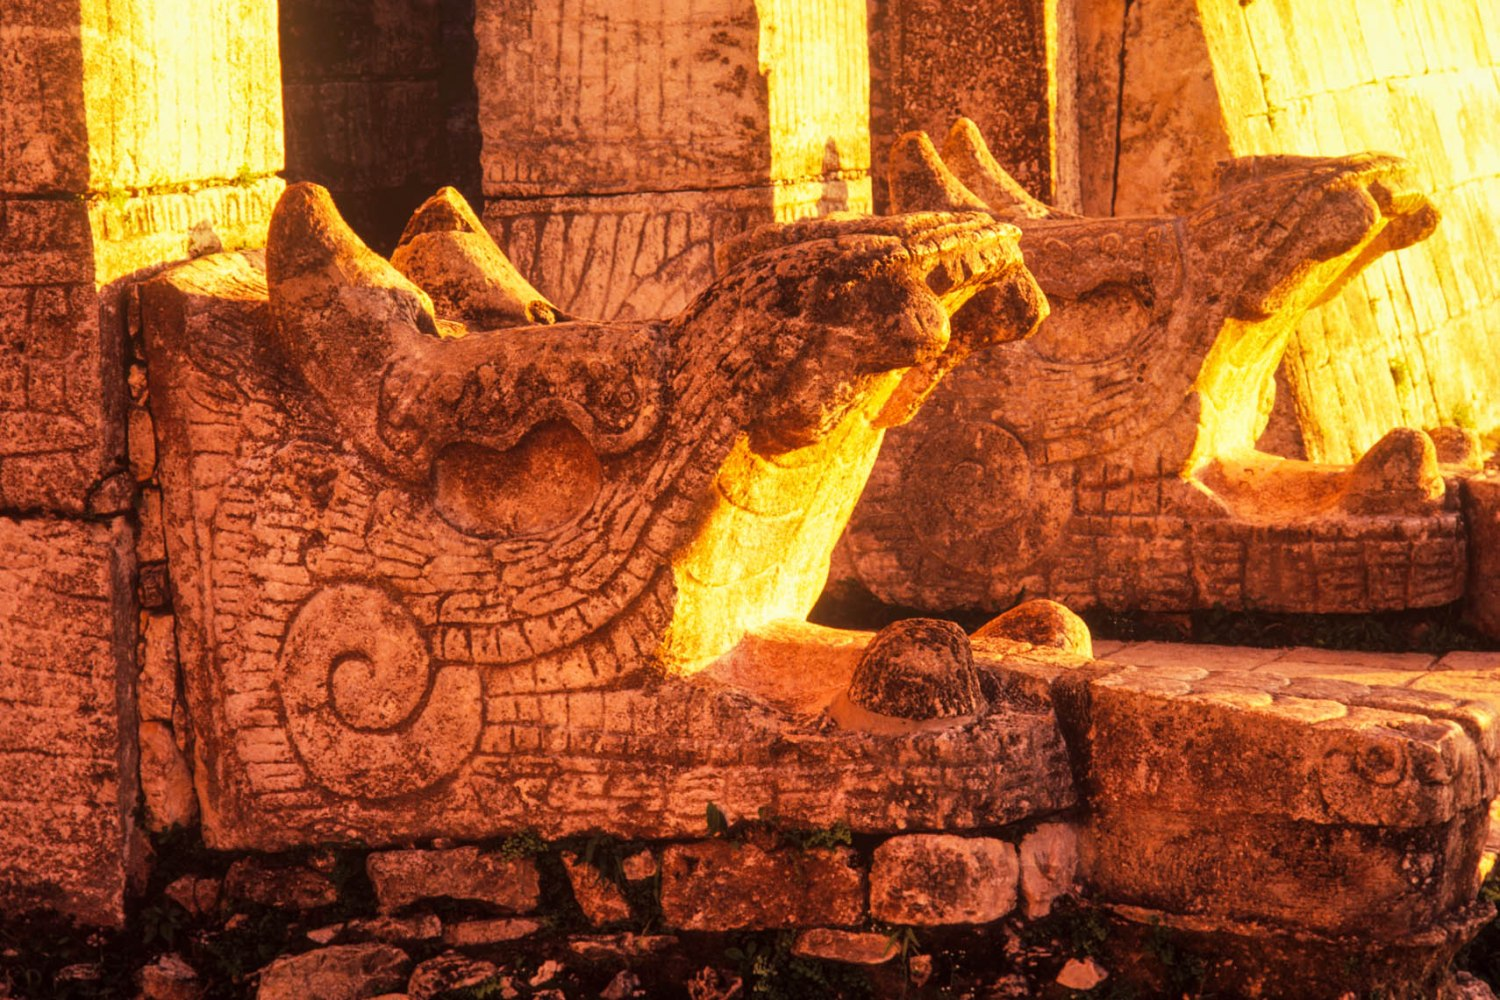 Carvings on Mayan Pyramid in Mexico